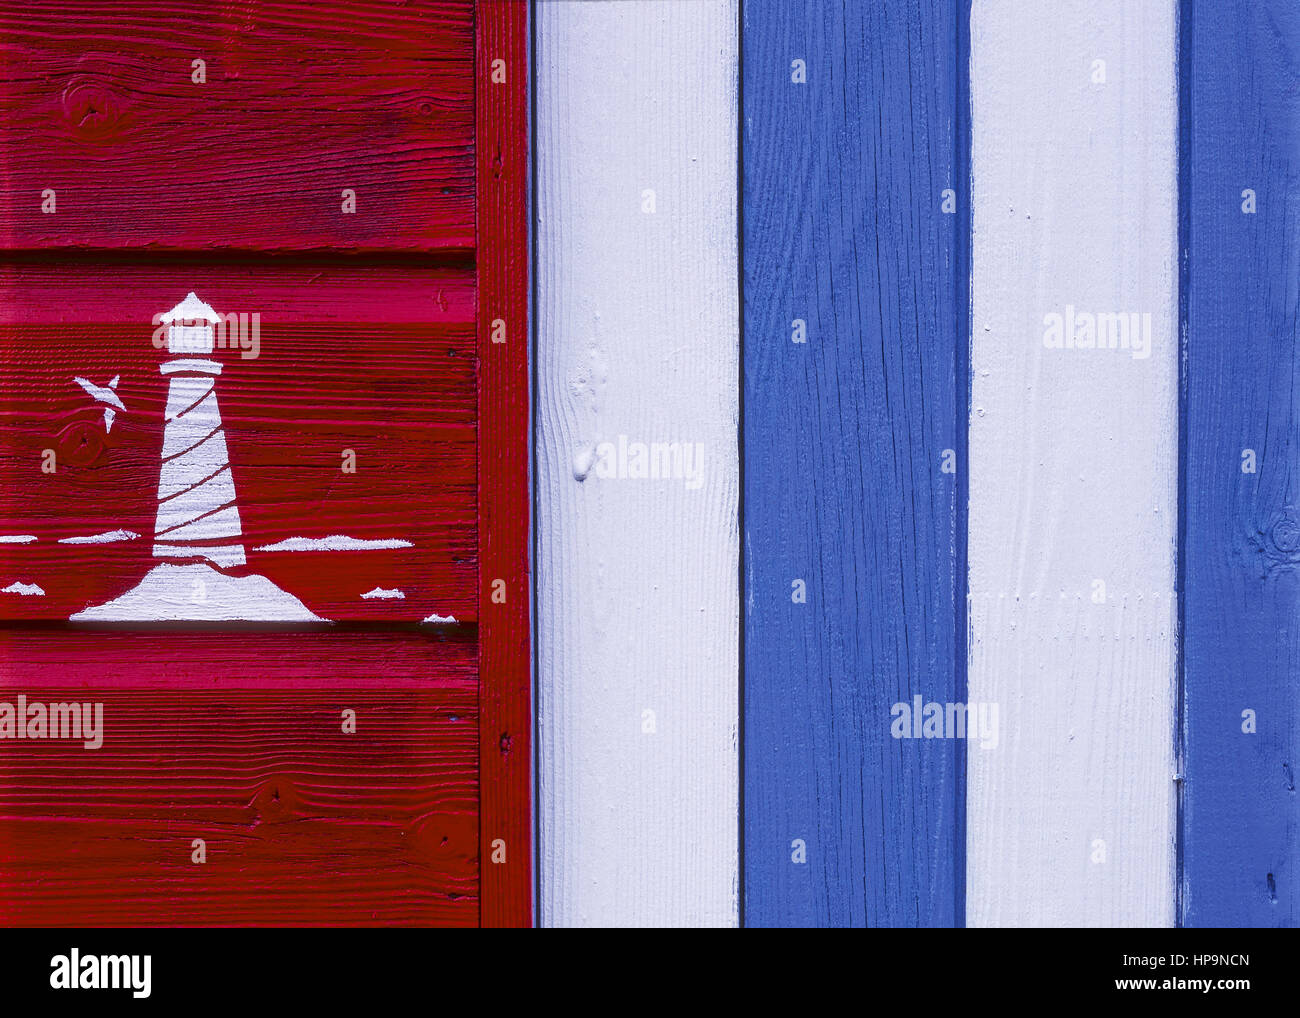 Der Magische Findhorn Garten Holzhuette Stock Photos And Holzhuette Stock Images Alamy